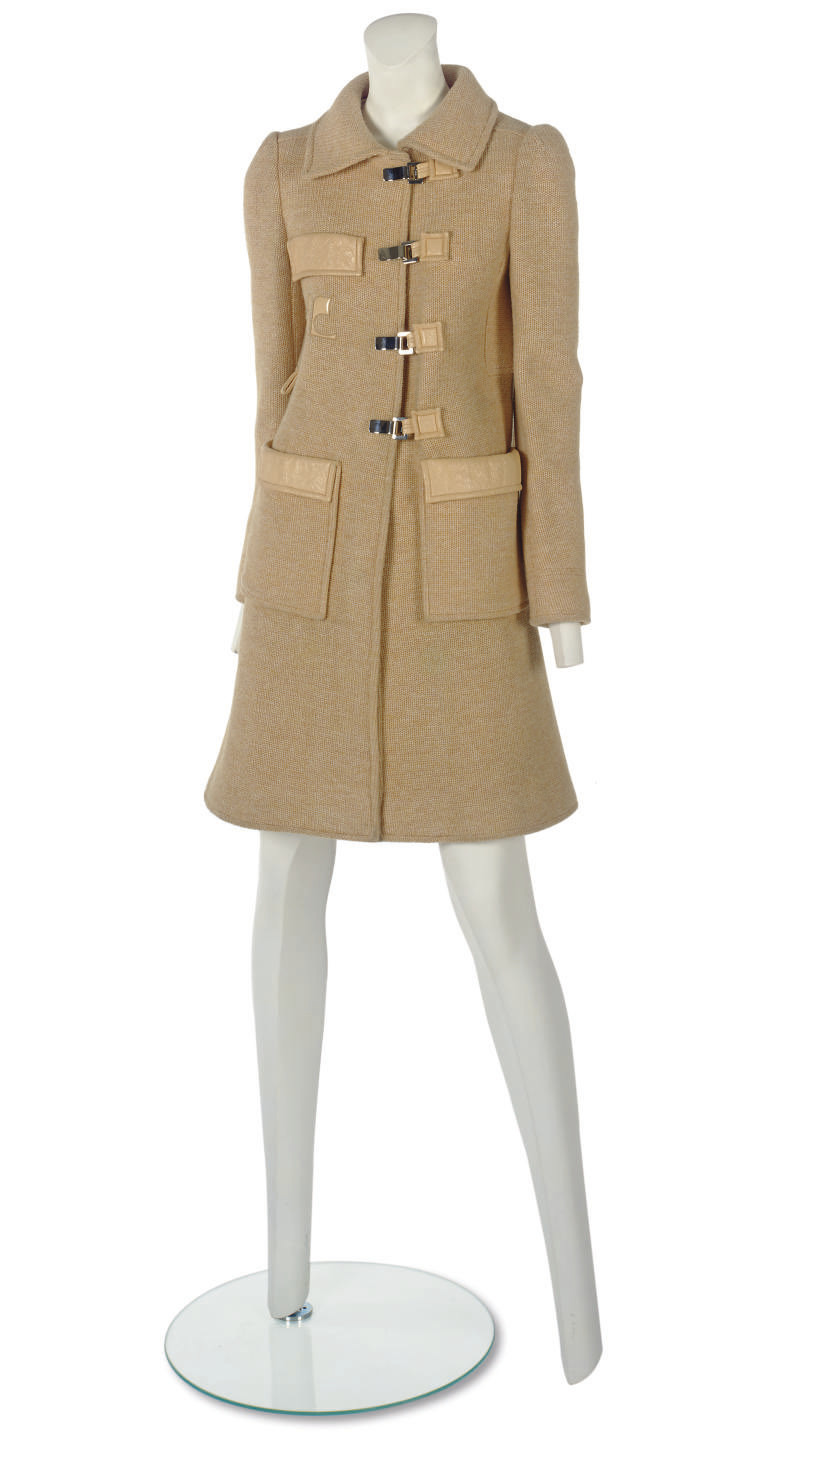 ANDRÉ COURRÈGES (B.1923) A KNITTED COAT OF APRICOT WOOL